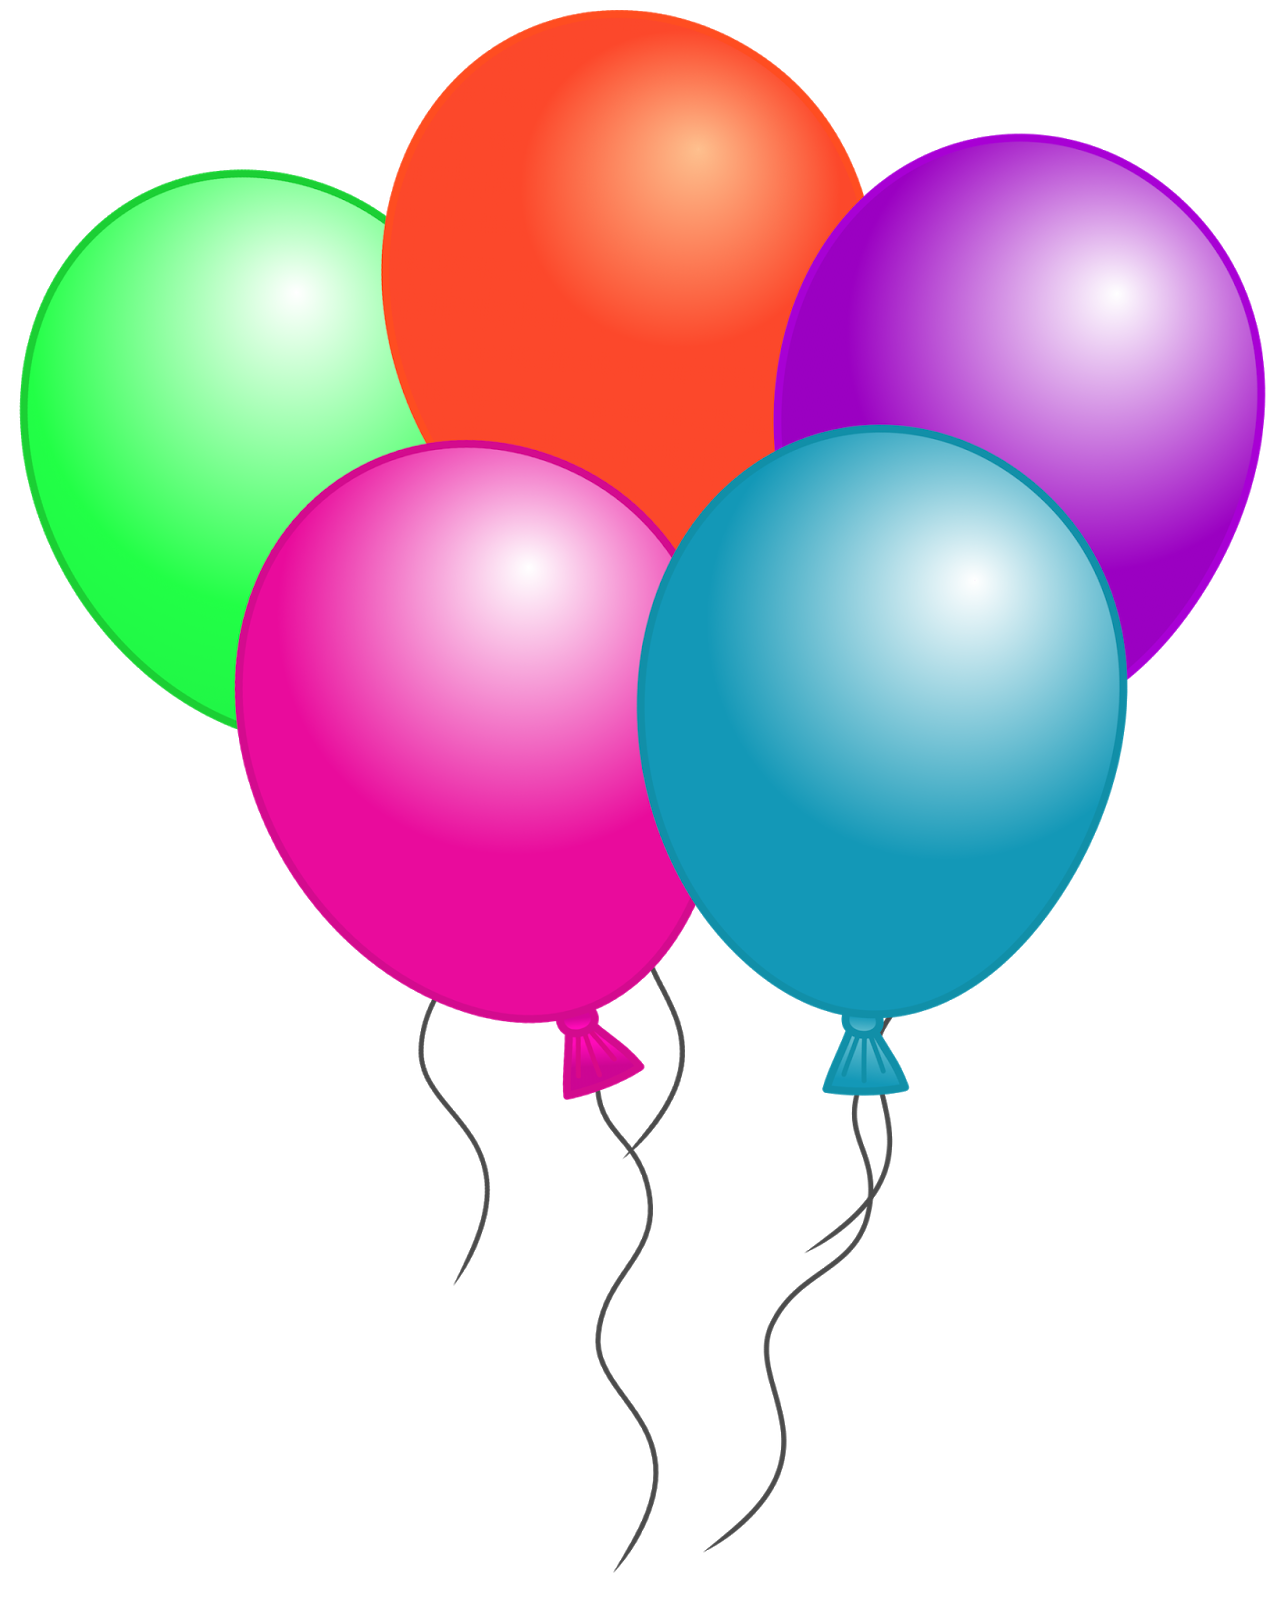 Balloon Clipart Png Clipart Panda Free Clipart Images